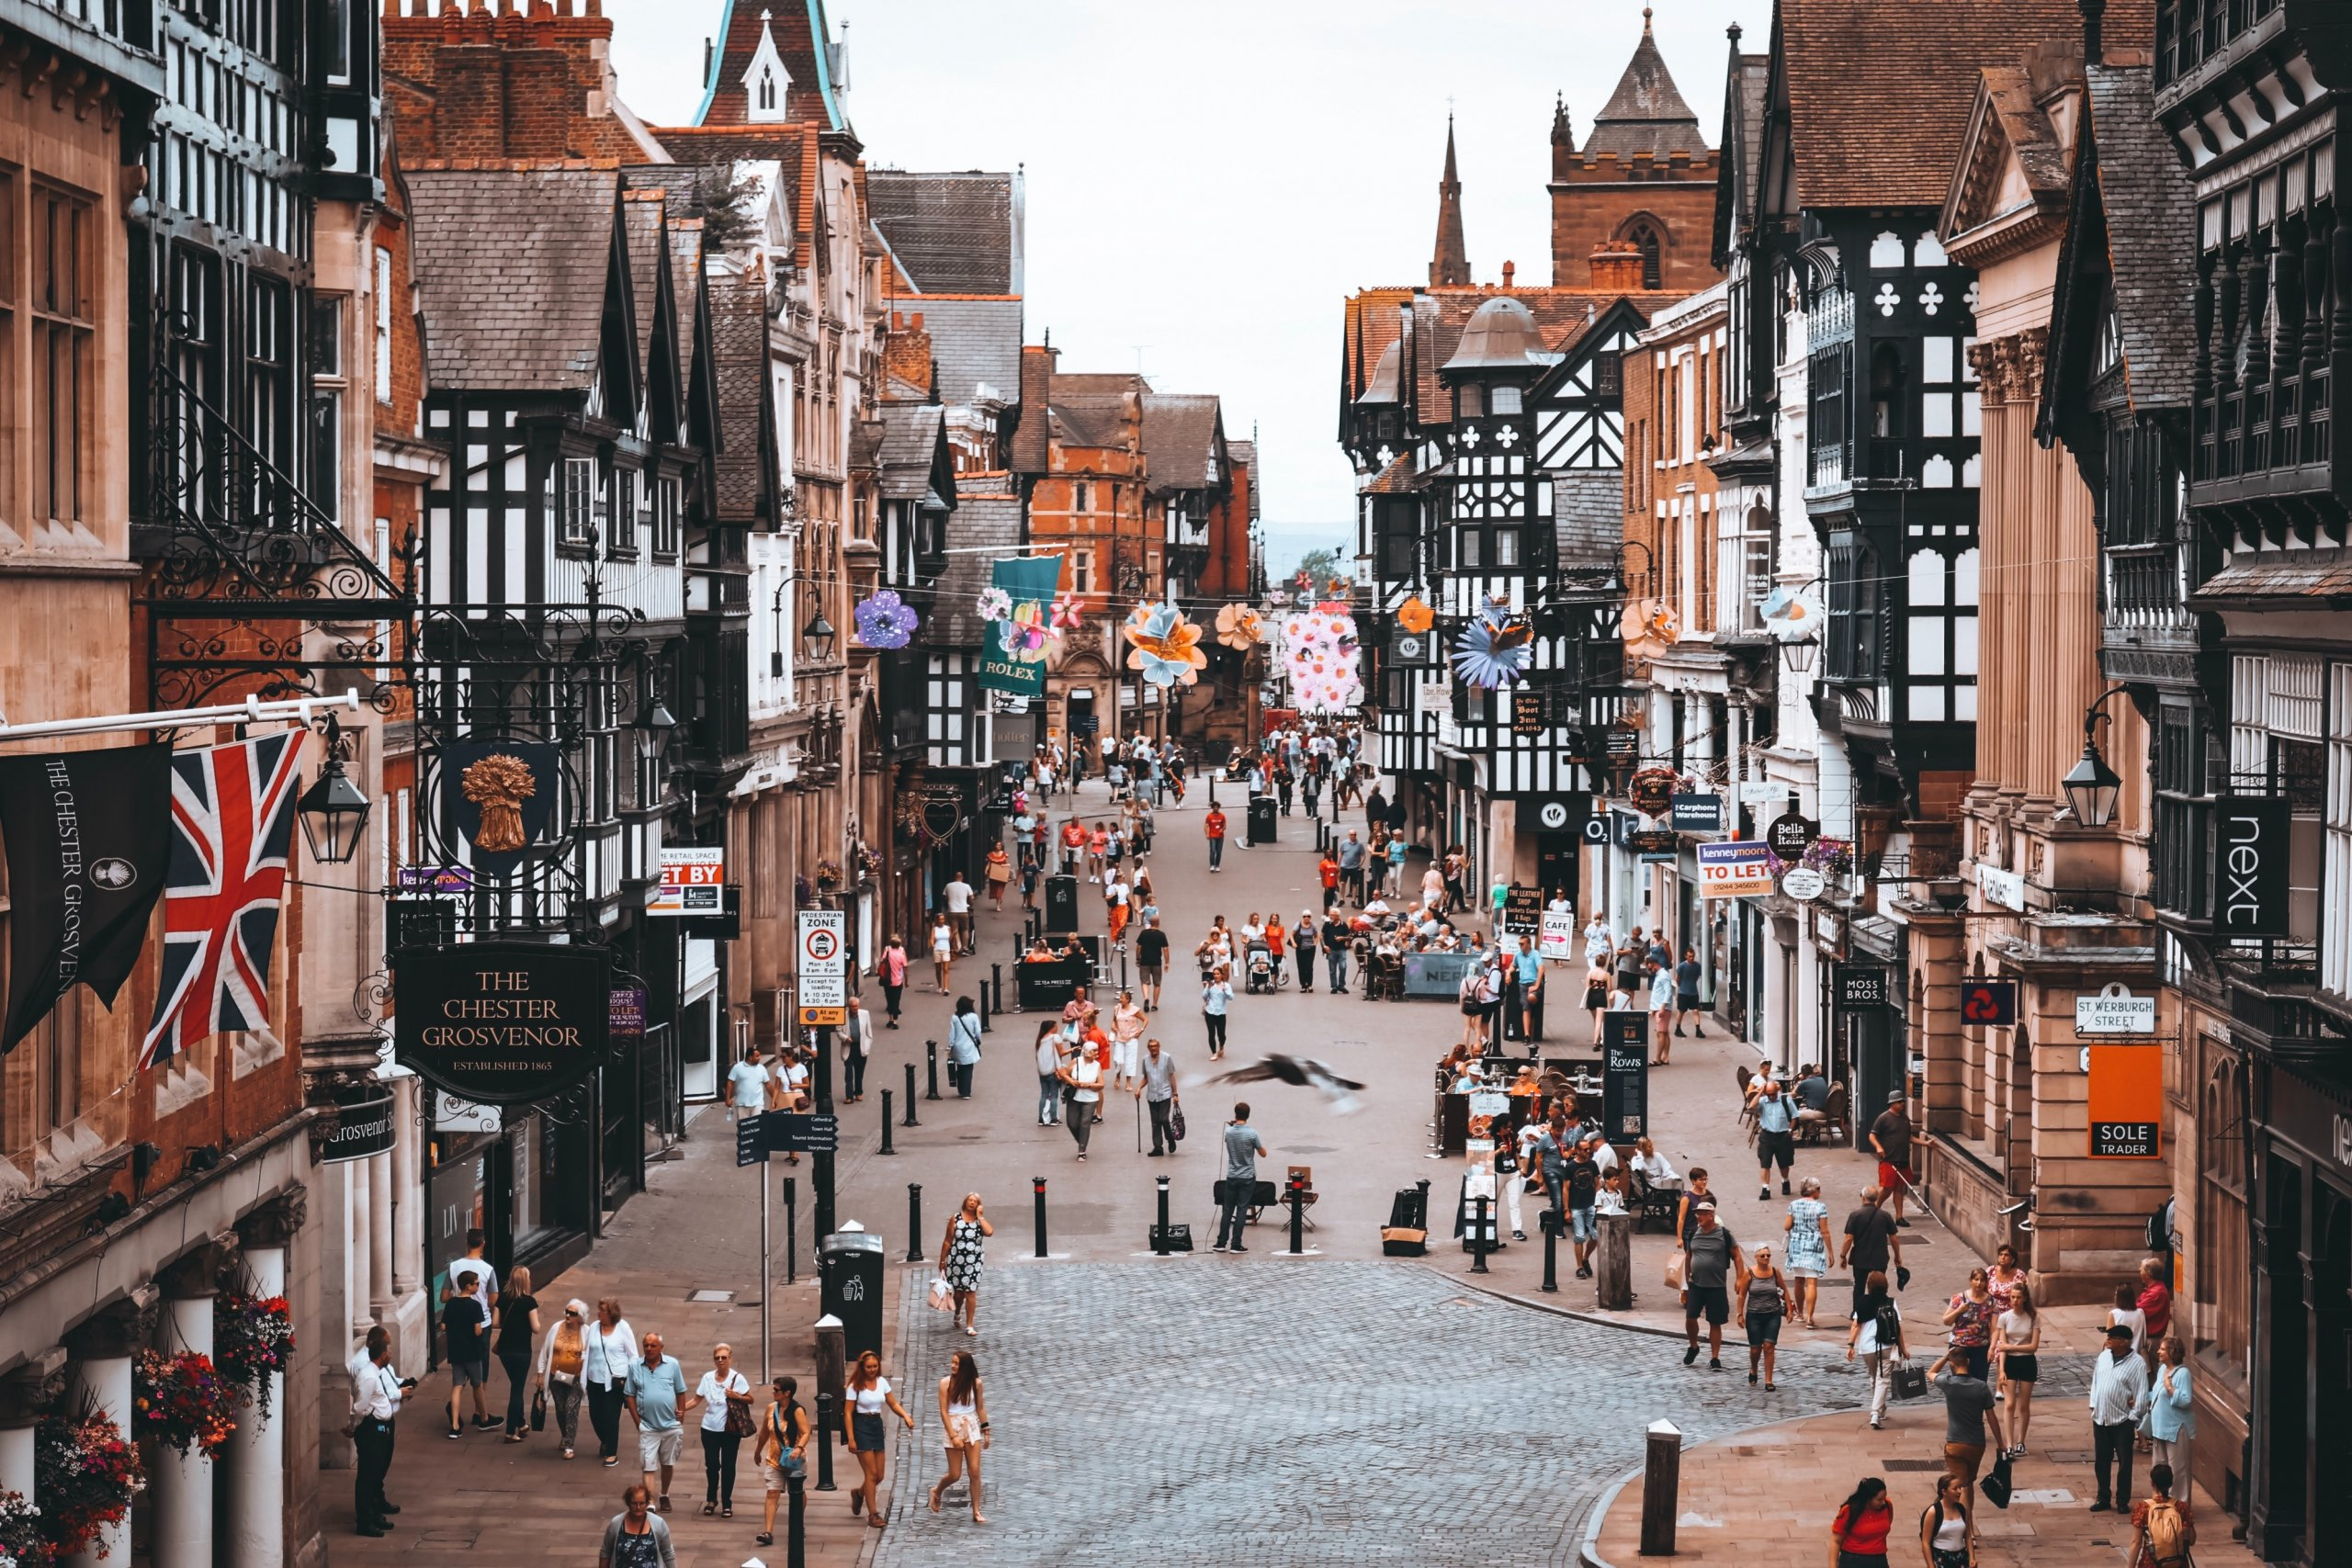 Chester city centre from above, Tudor building line cobbled street with pedestrians walking